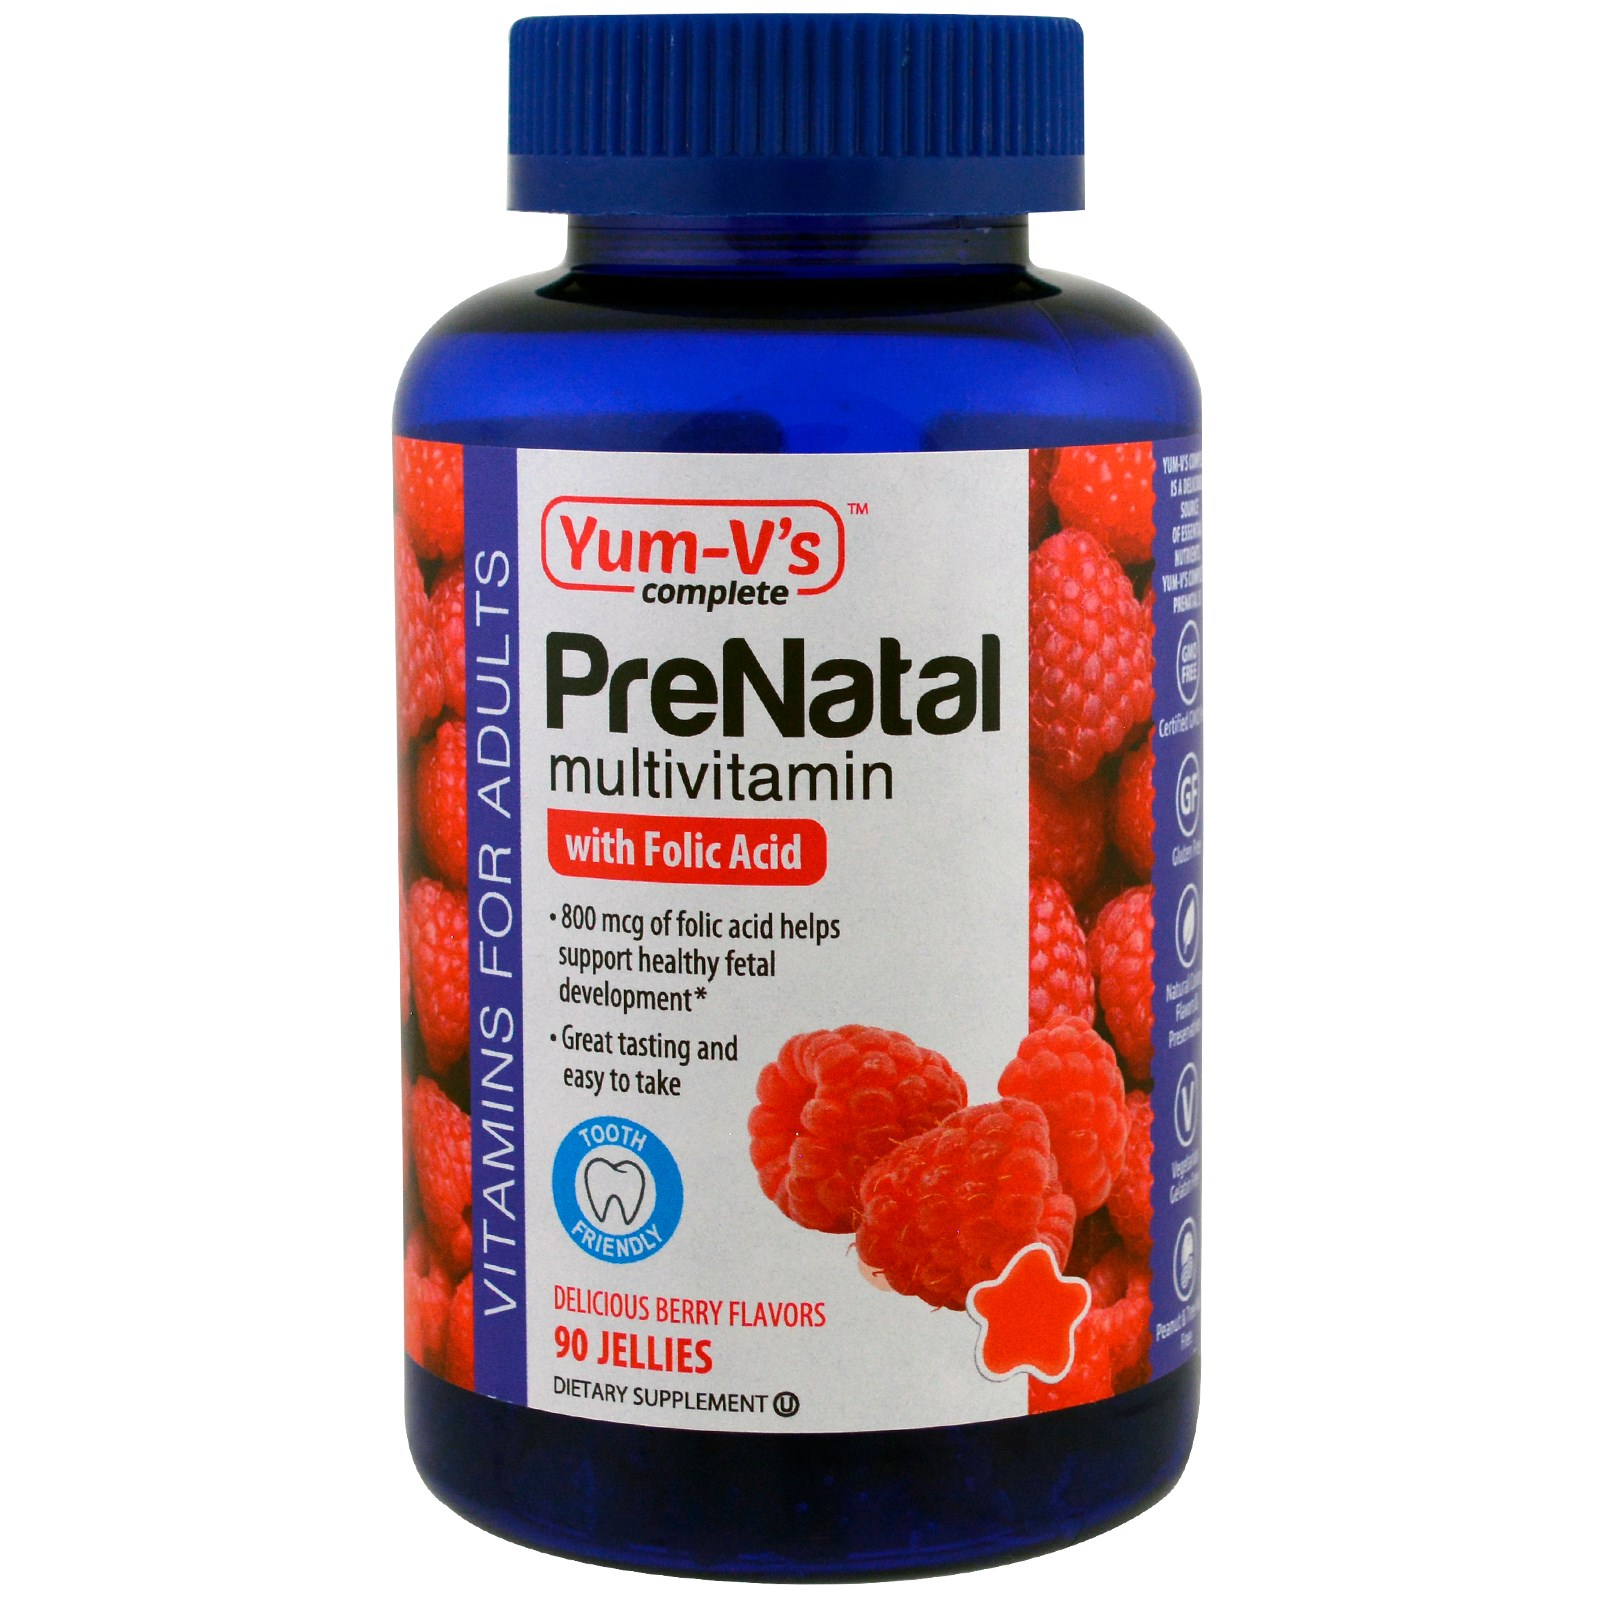 Yum-V's, PreNatal Multivitamin with Folic Acid, Berry Flavors, 90 Jellies(pack of 3)